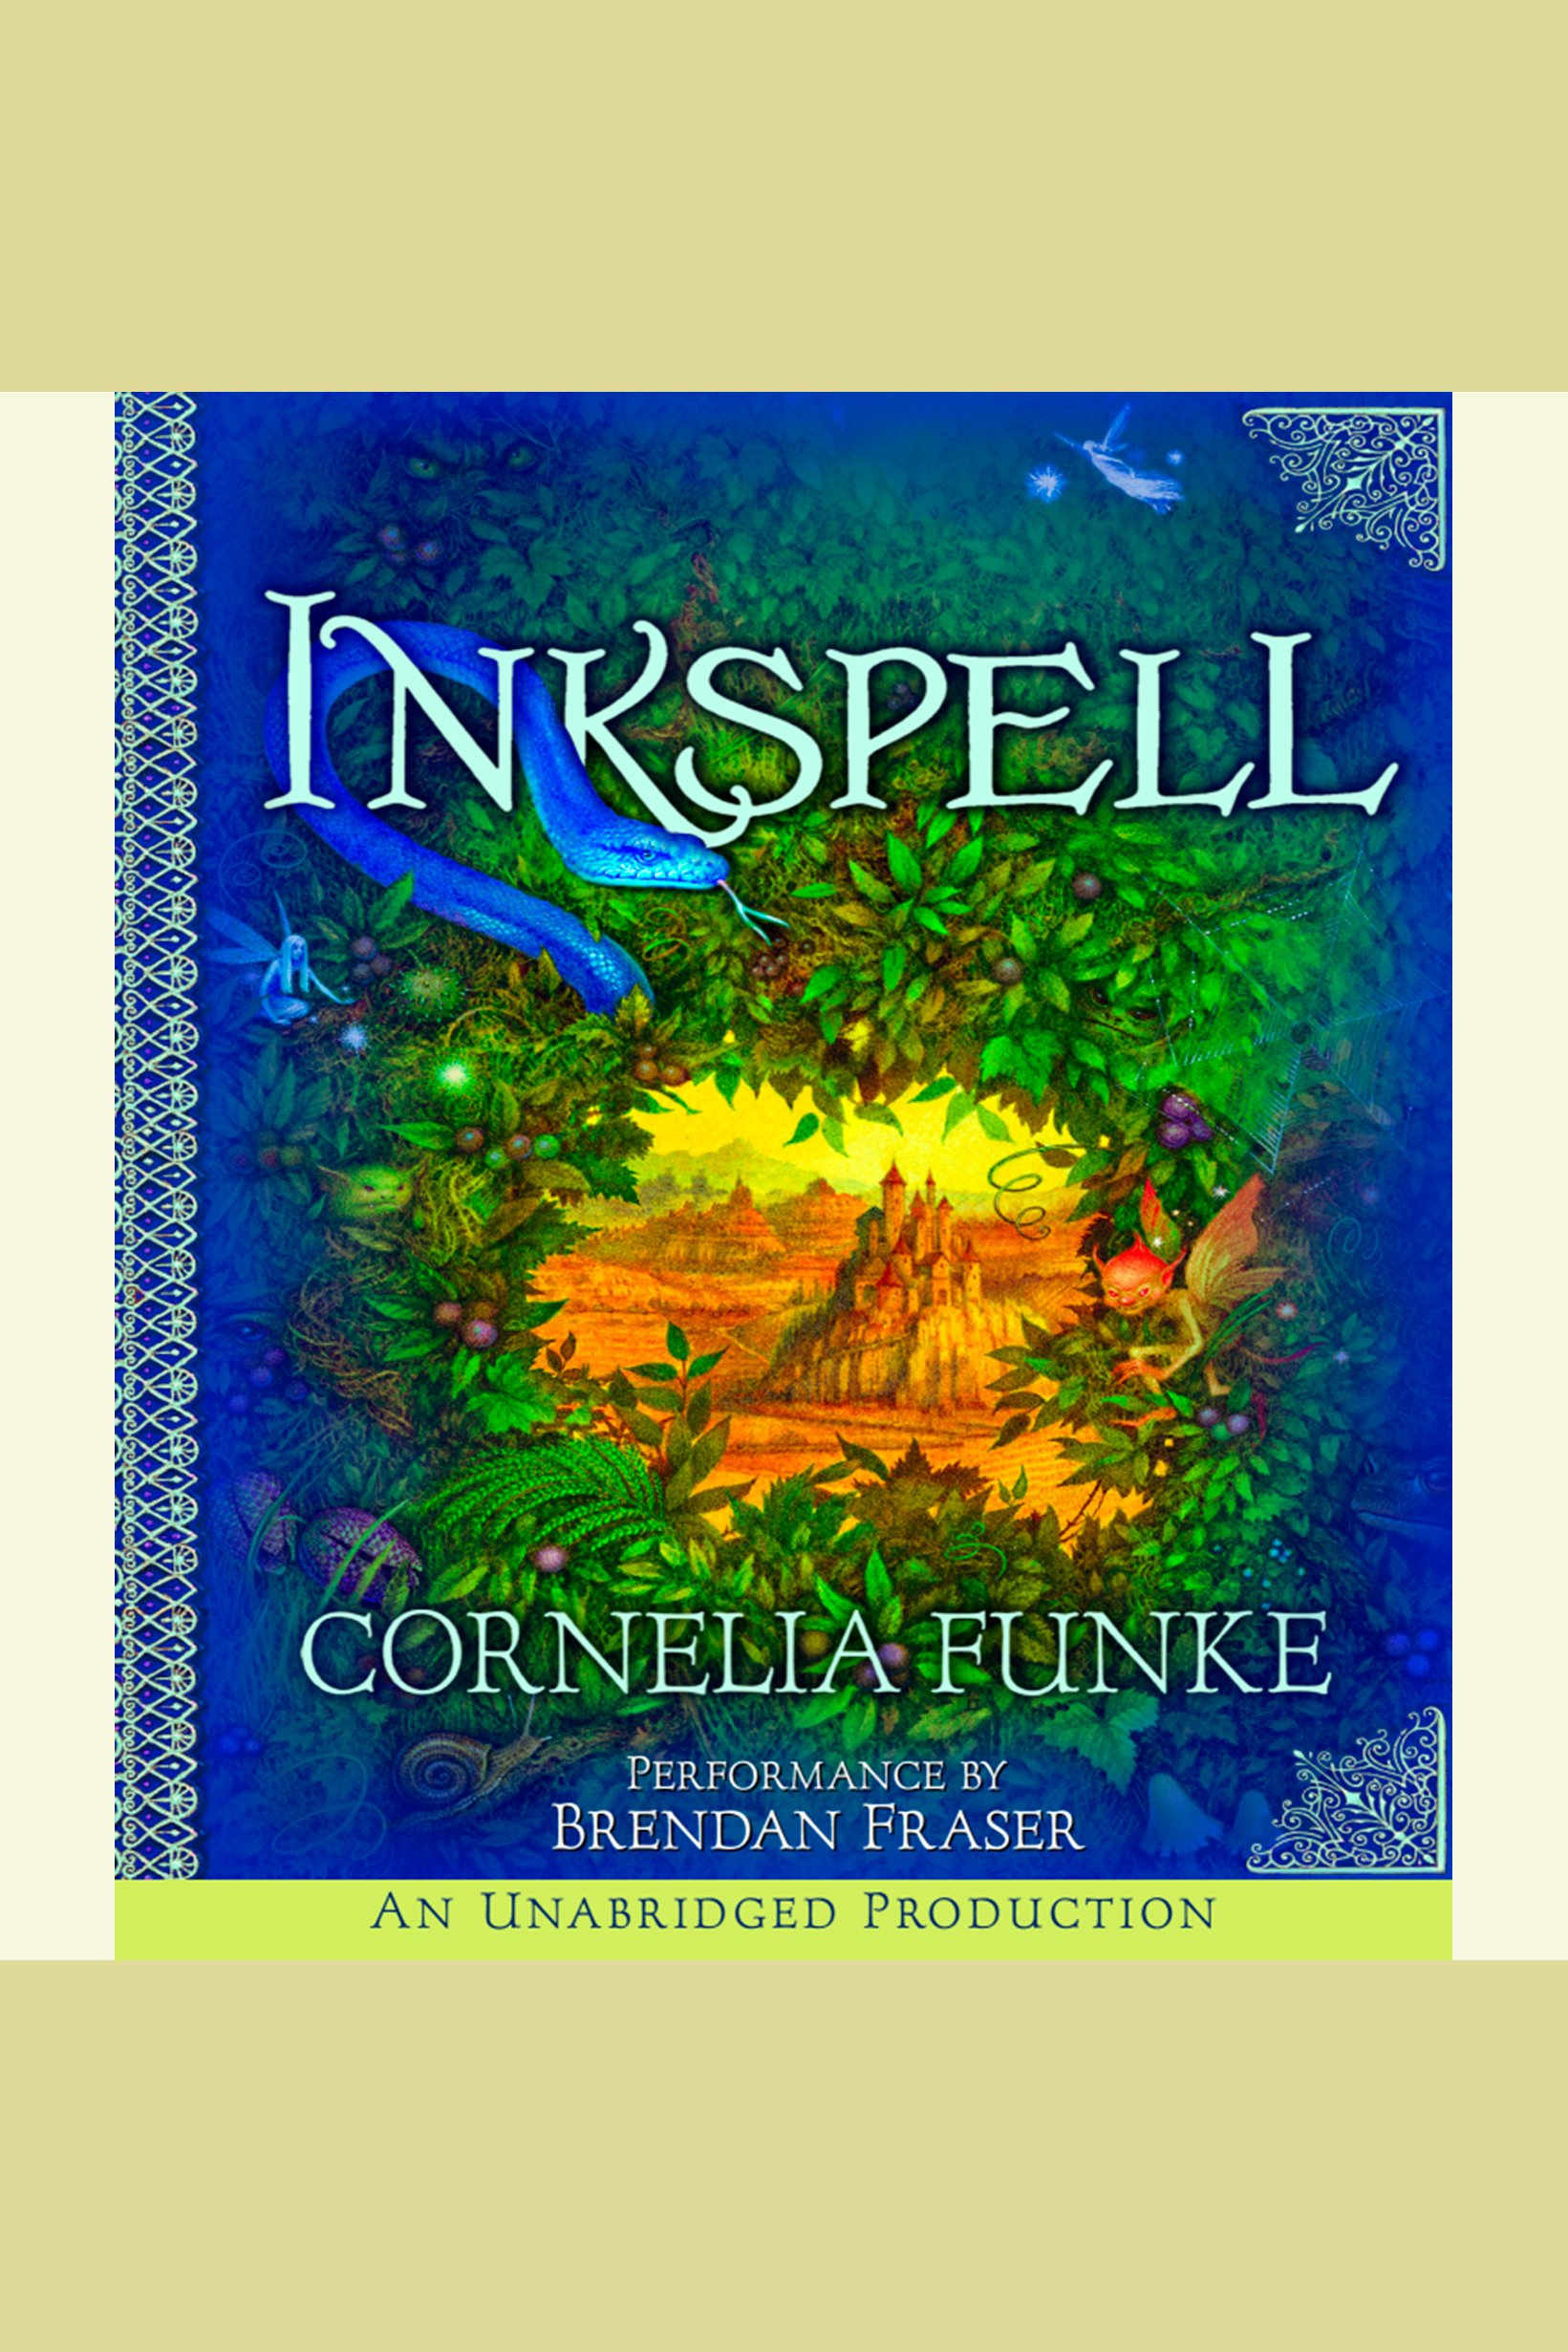 Inkspell cover image